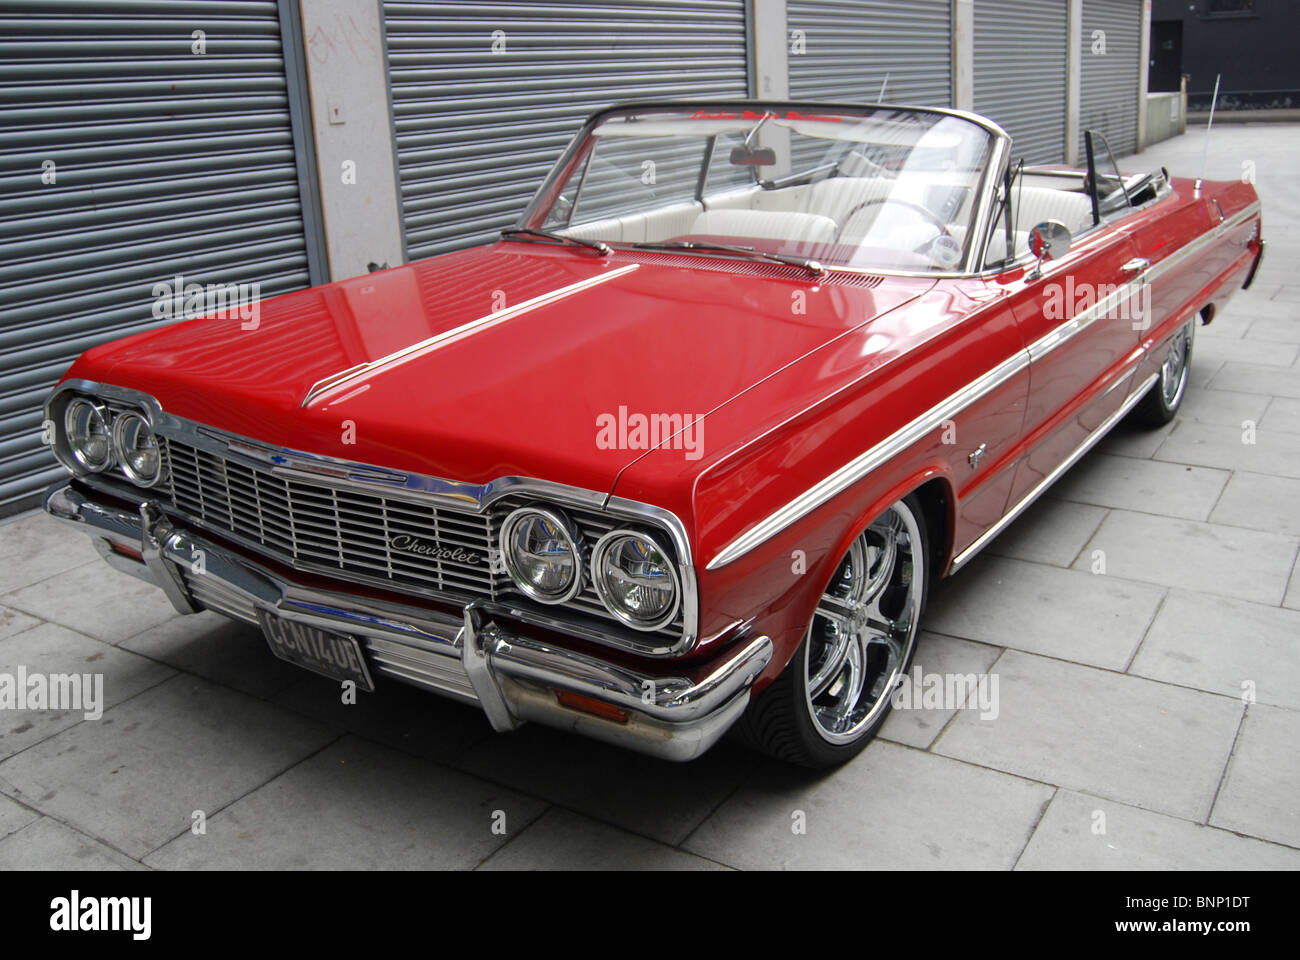 Chevy Impala 1960s Car Red Stock Photo 30602260 Alamy